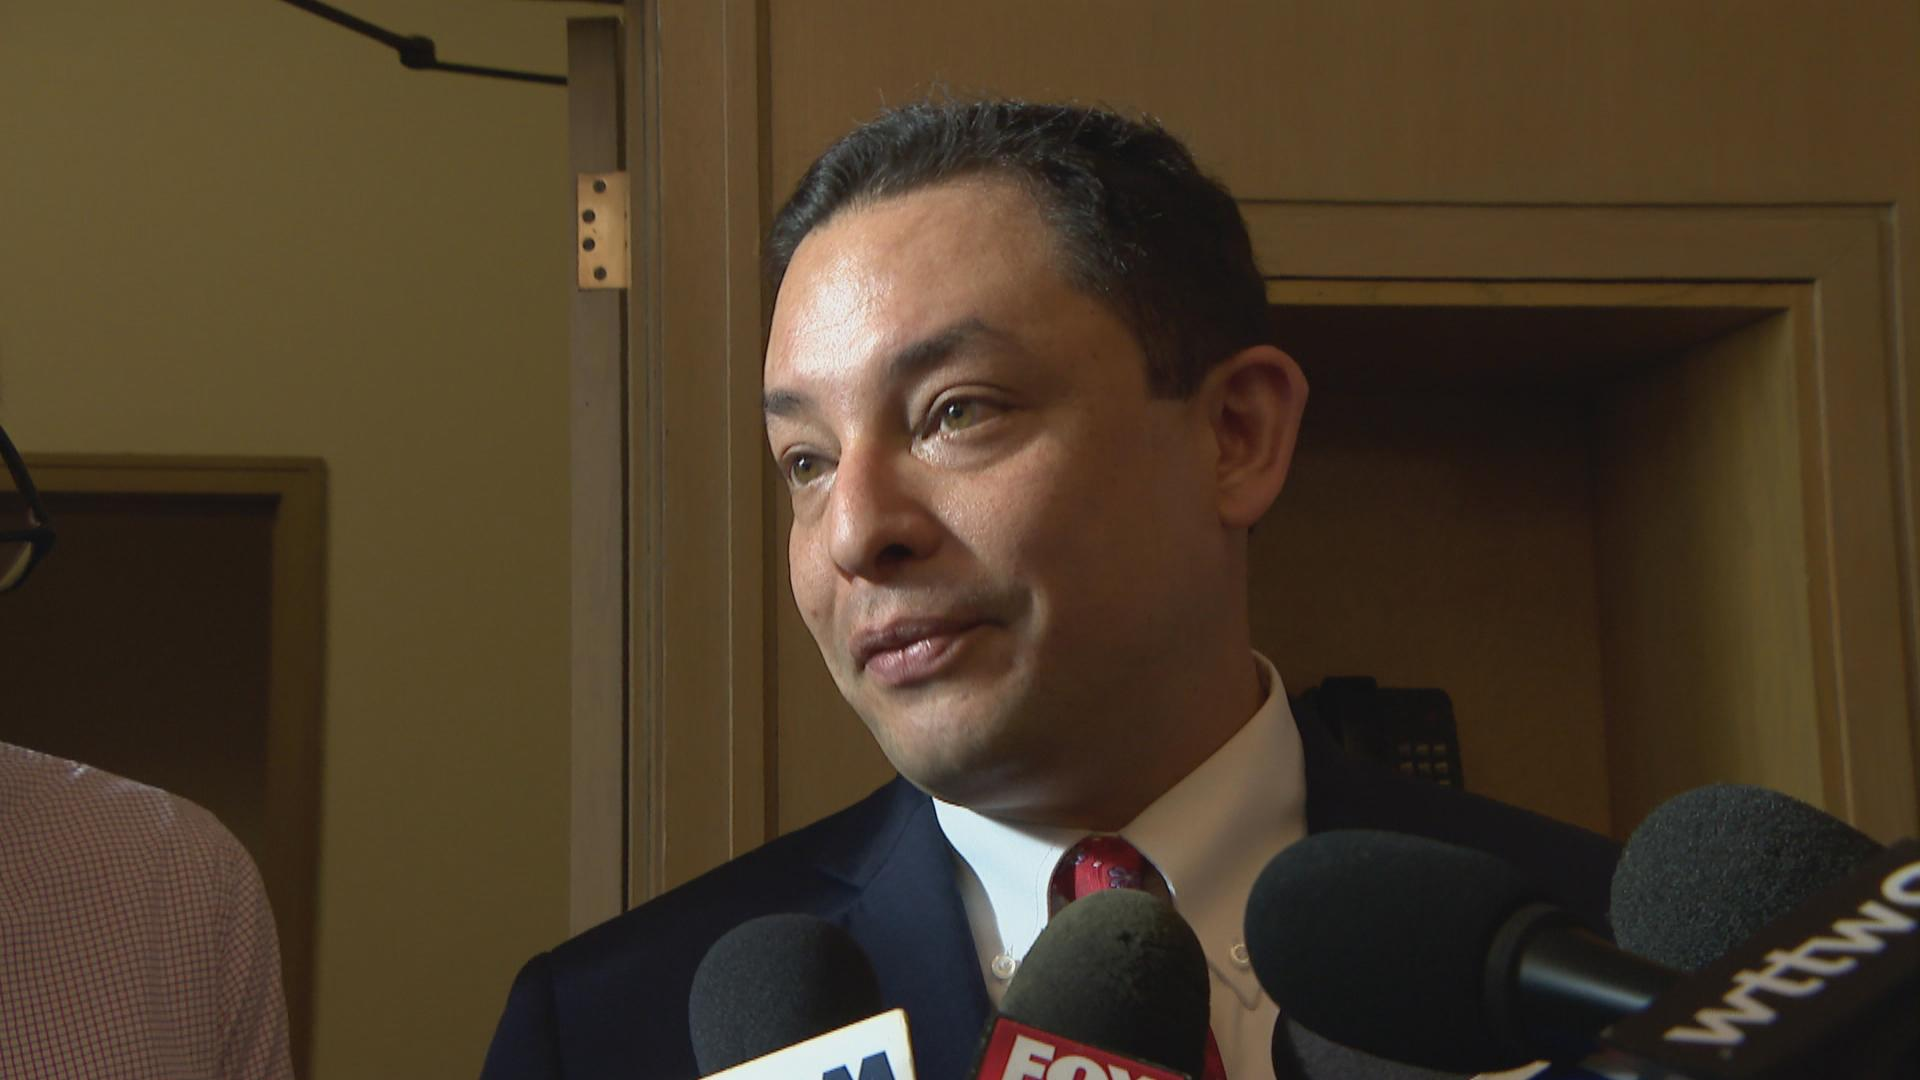 """First and foremost, I'm not trying to be the organizer of a resistance against the mayor,"" Ald. Raymond Lopez said Wednesday following the first City Council meeting presided over by new Mayor Lori Lightfoot. (WTTW News)"